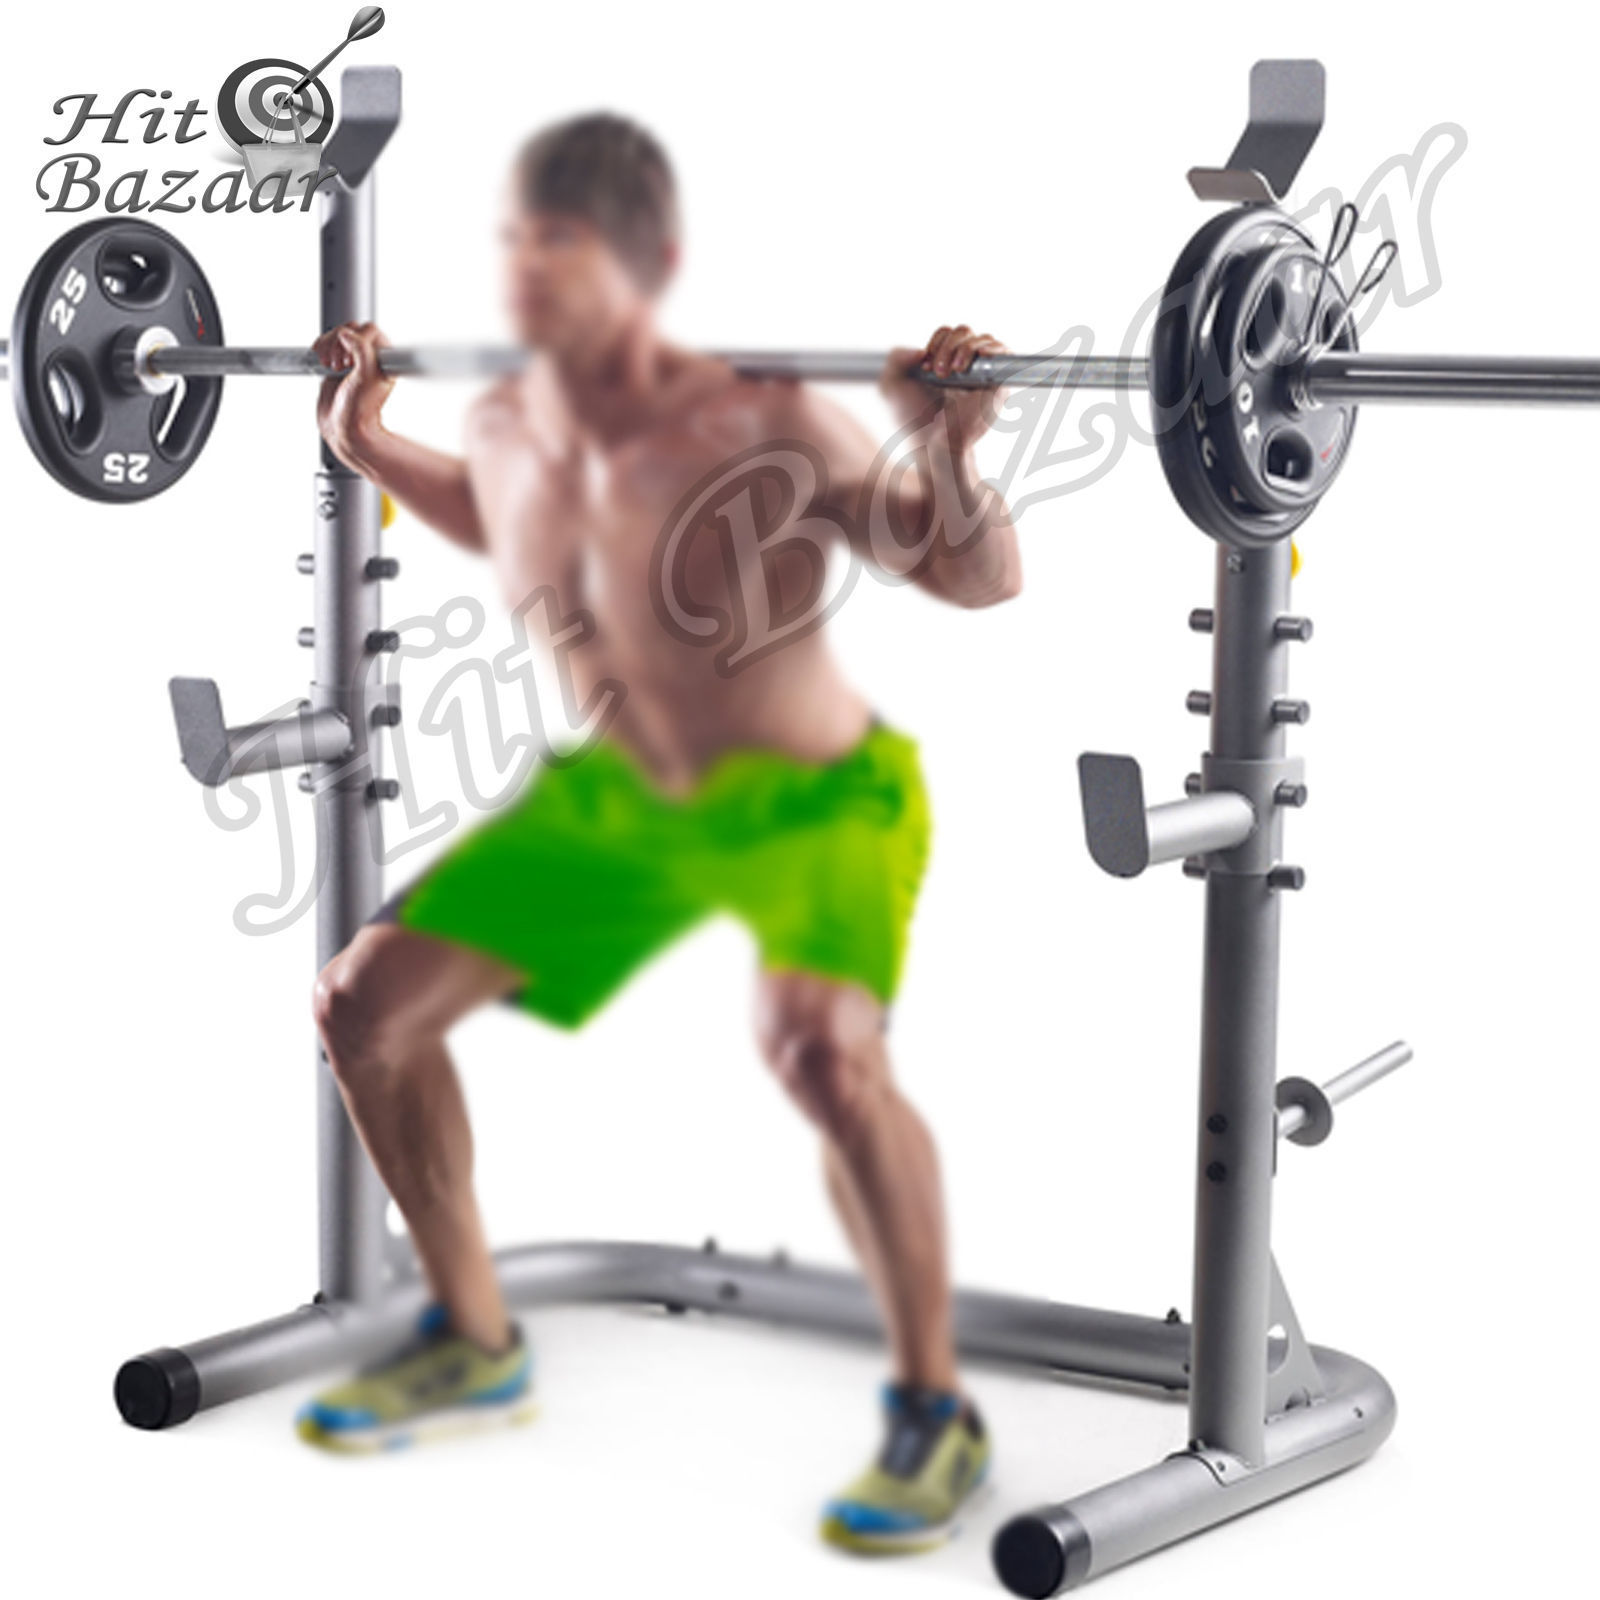 Squat Stands Power Rack Weight Lifting Home Gym Workout ...